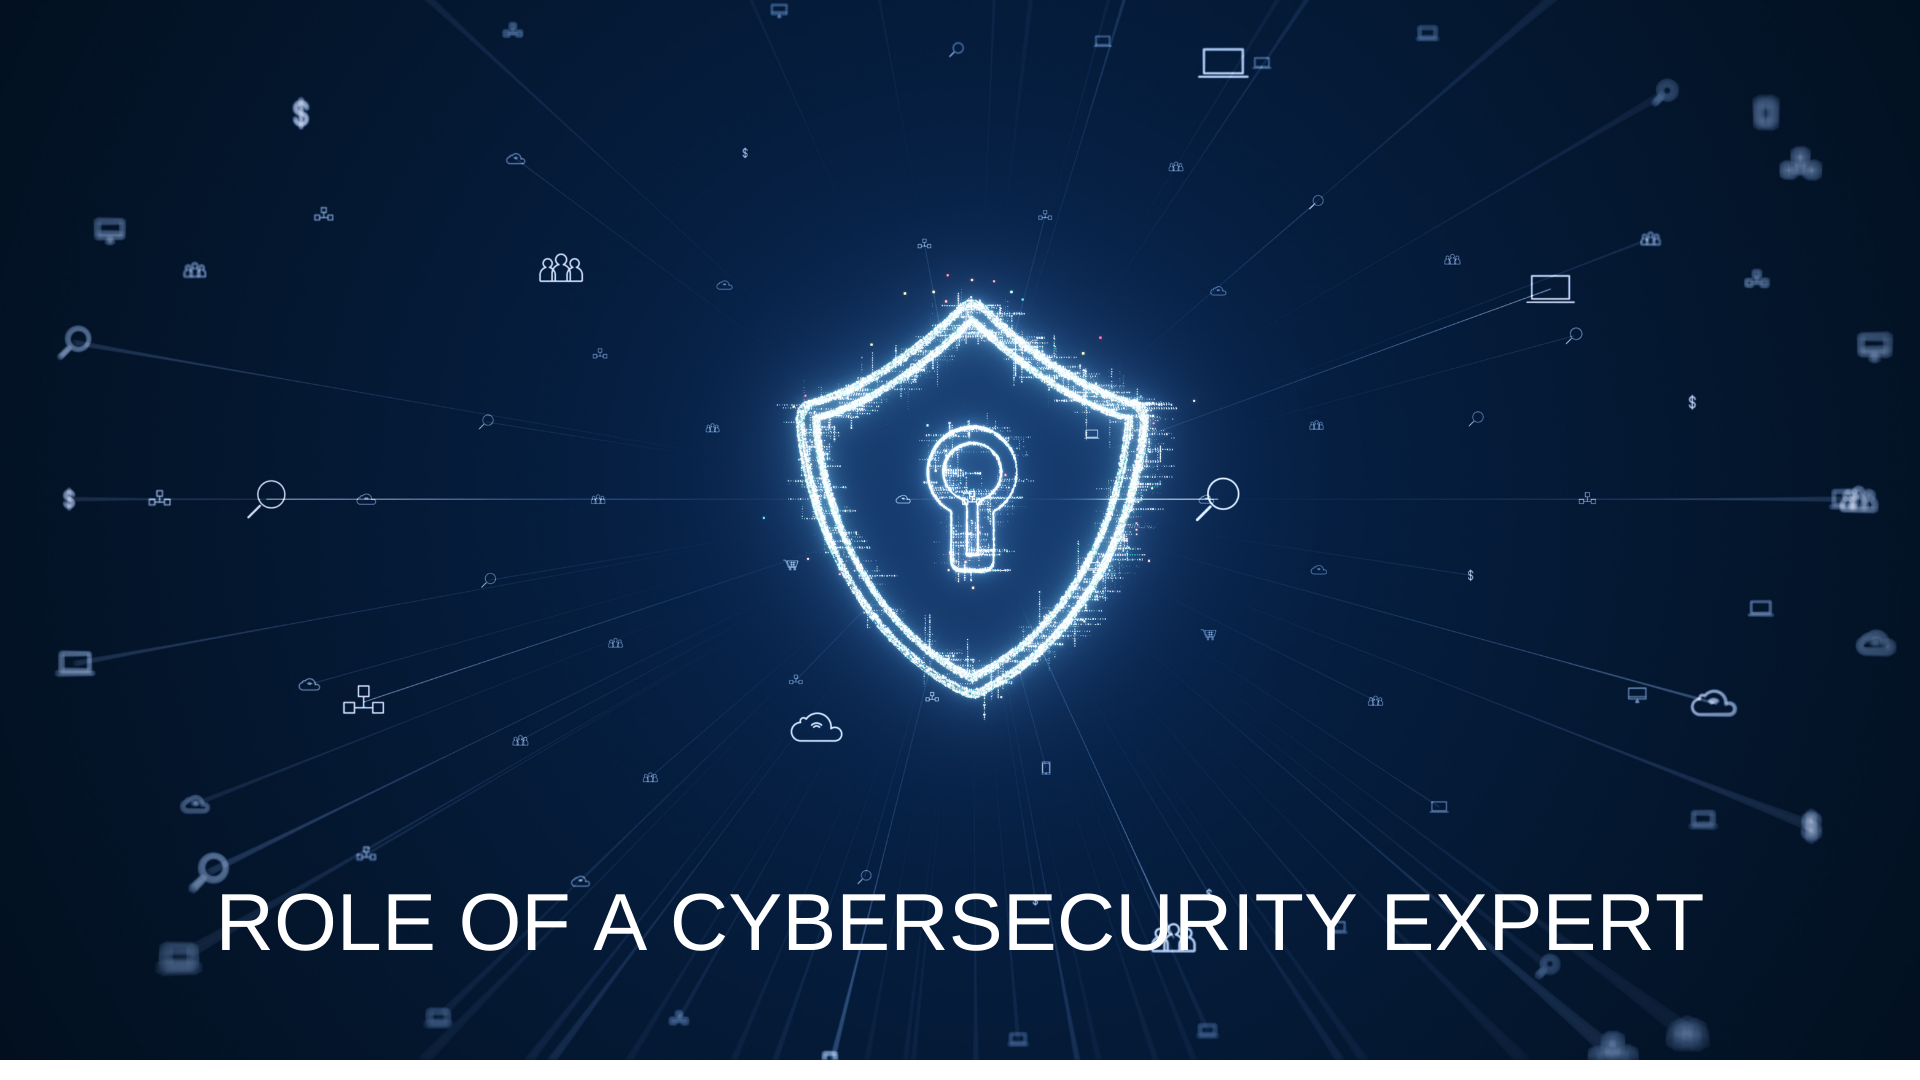 role of a cybersecurity expert